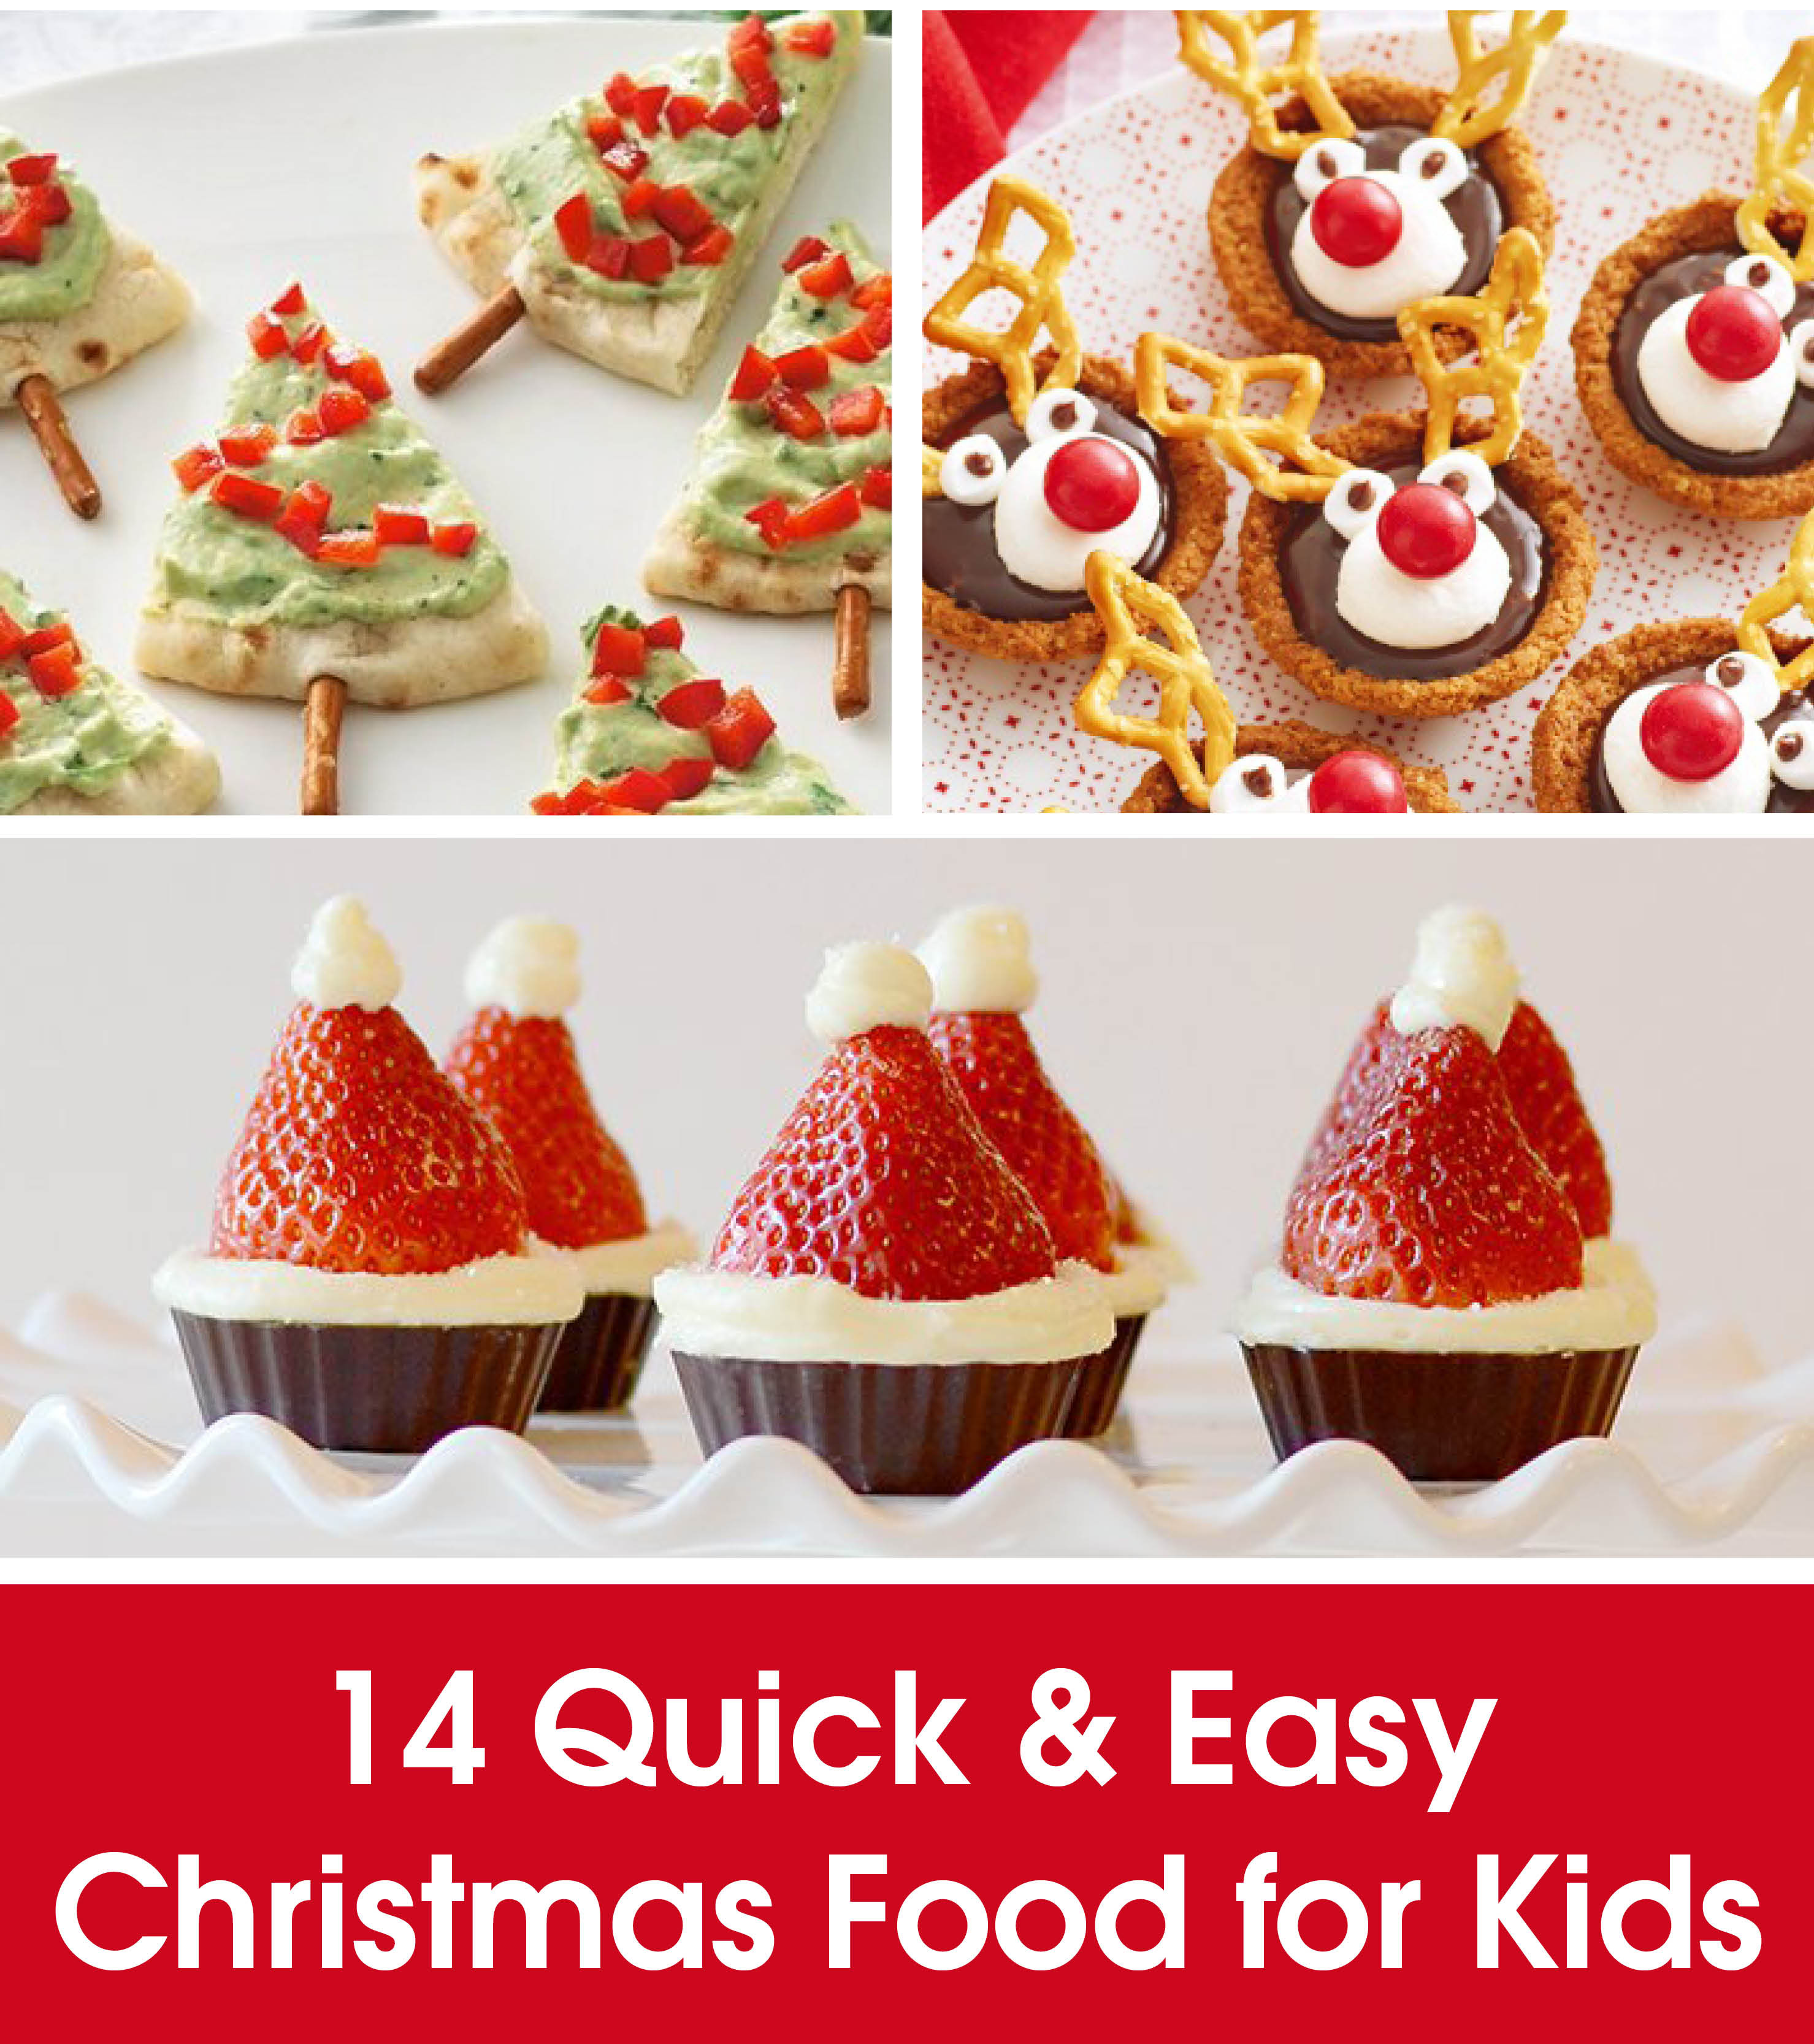 Christmas Dinners For Kids  QUICK & EASY CHRISTMAS FOOD FOR KIDS